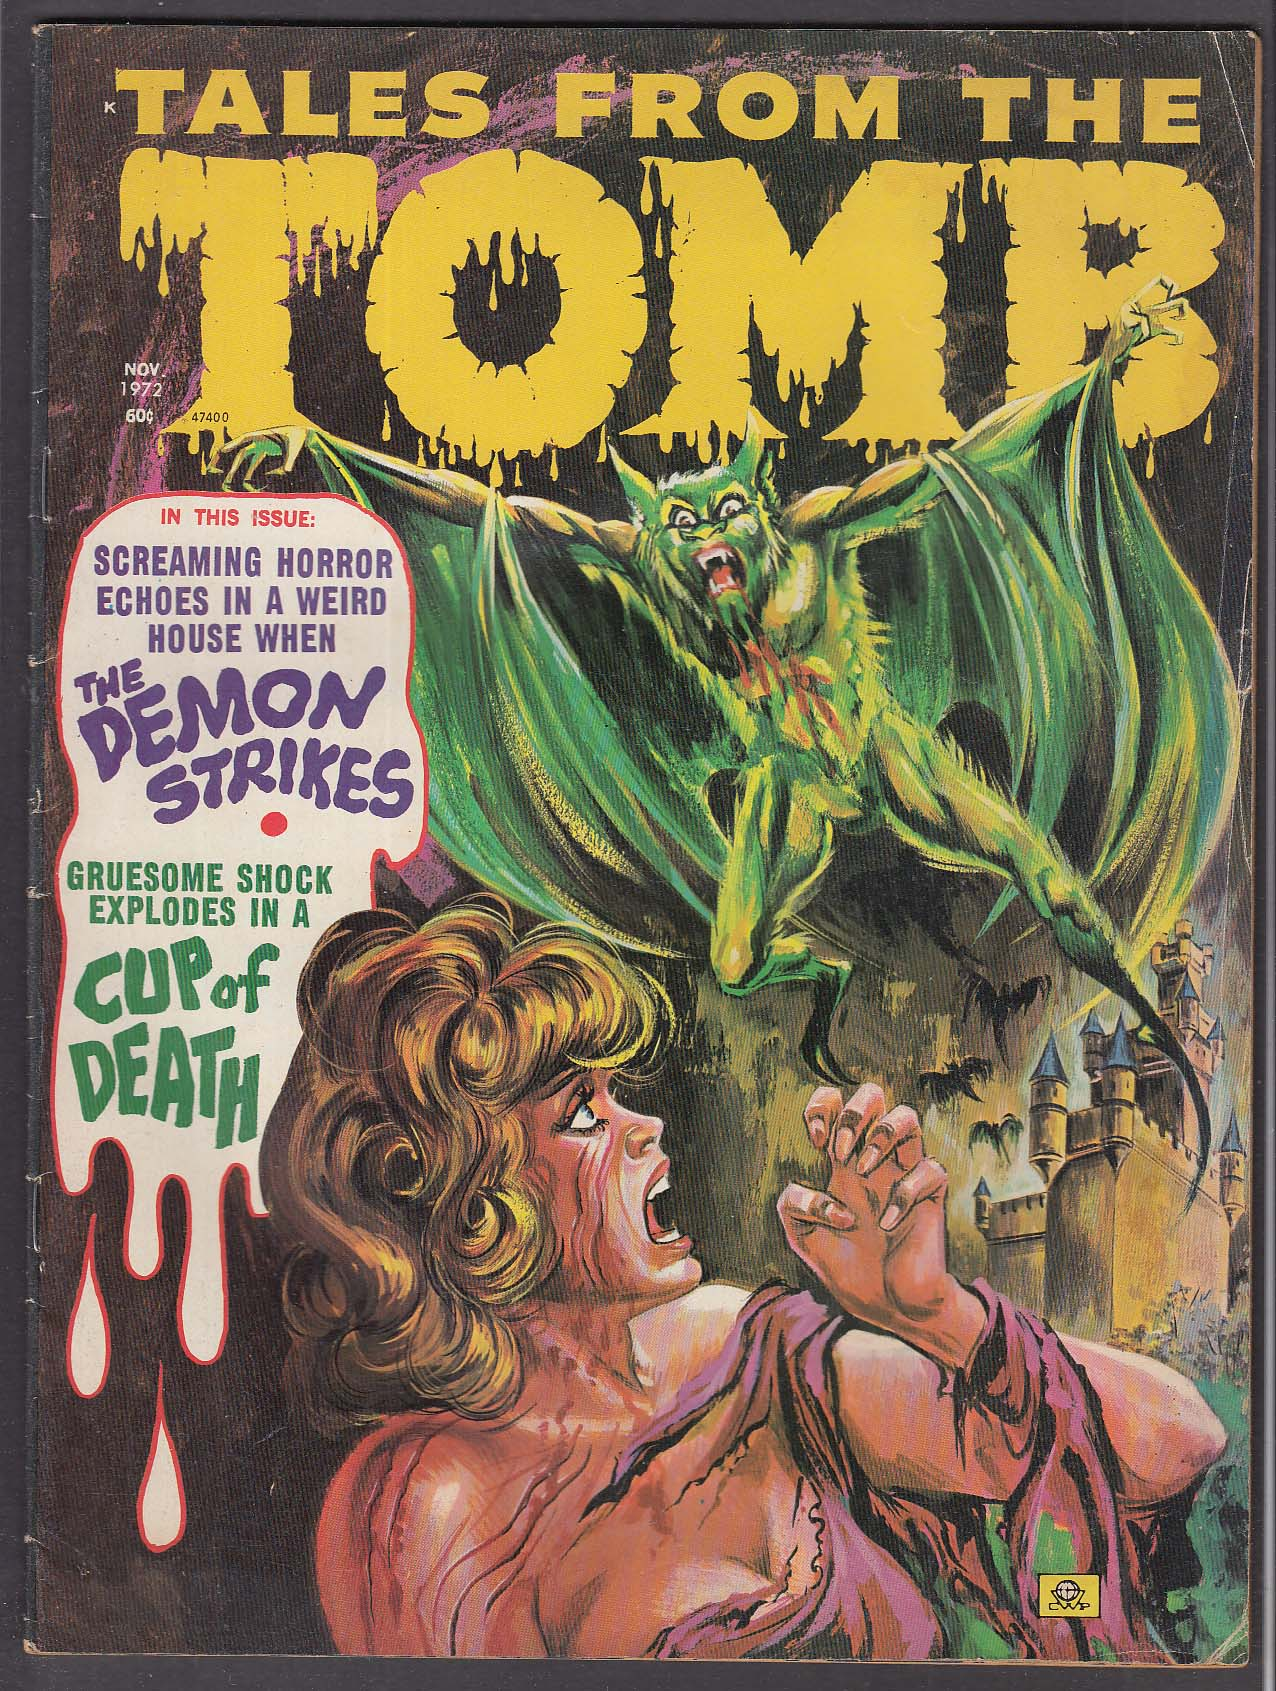 Tales From the TOMB Vol 4 #5 Eerie comic book 11 1972